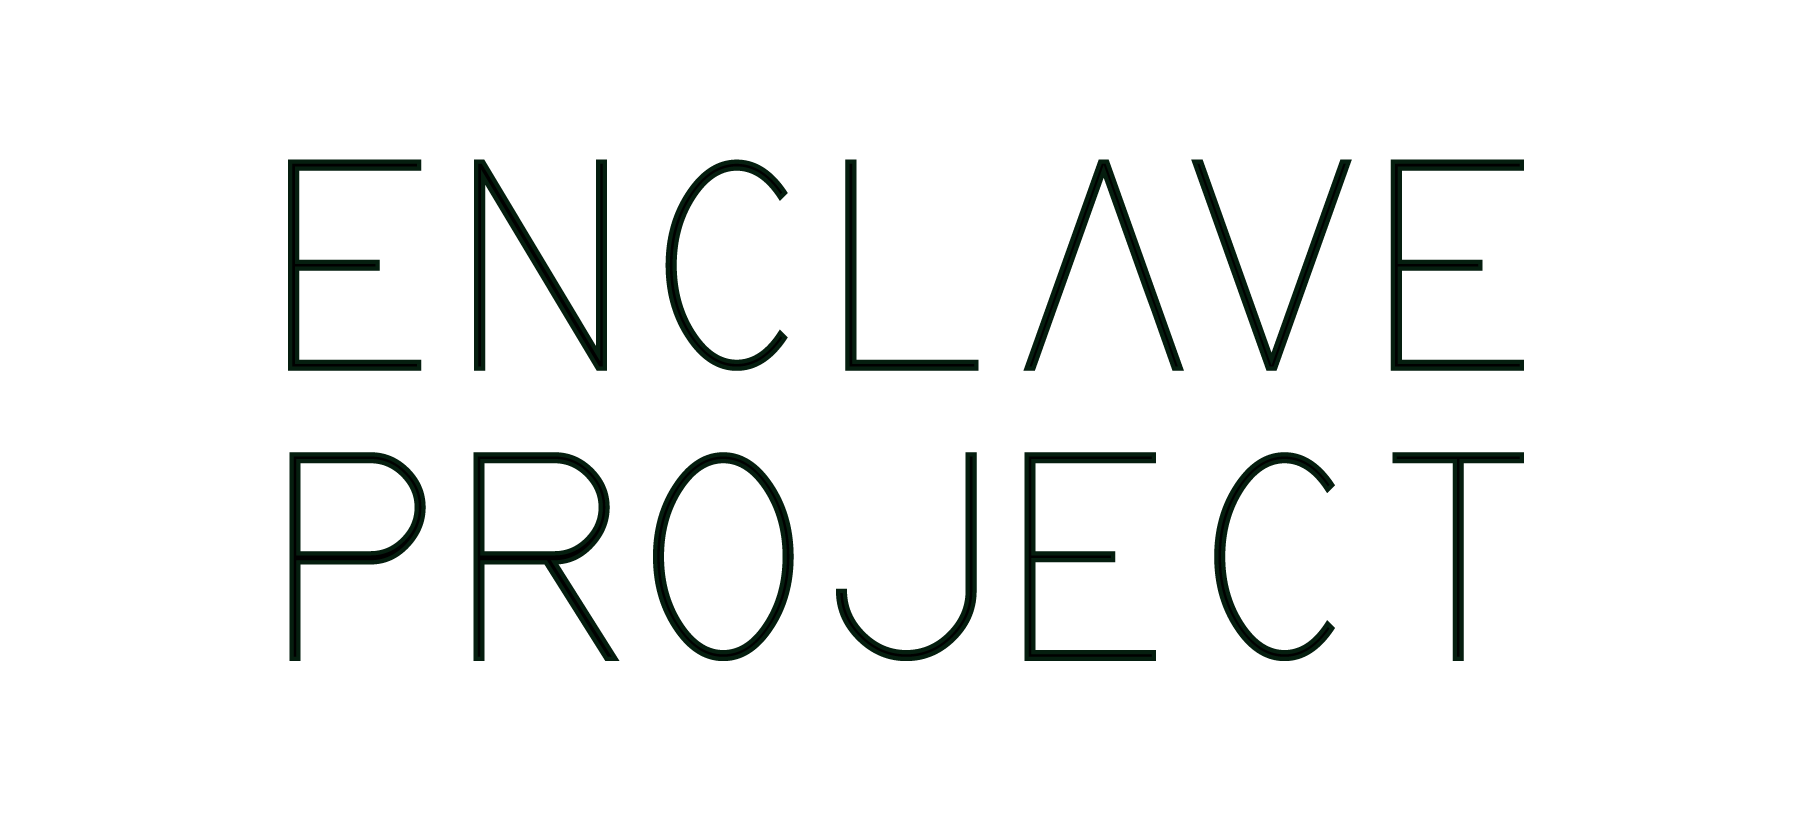 The_Enclave_Project_has_partnered_with_t-1